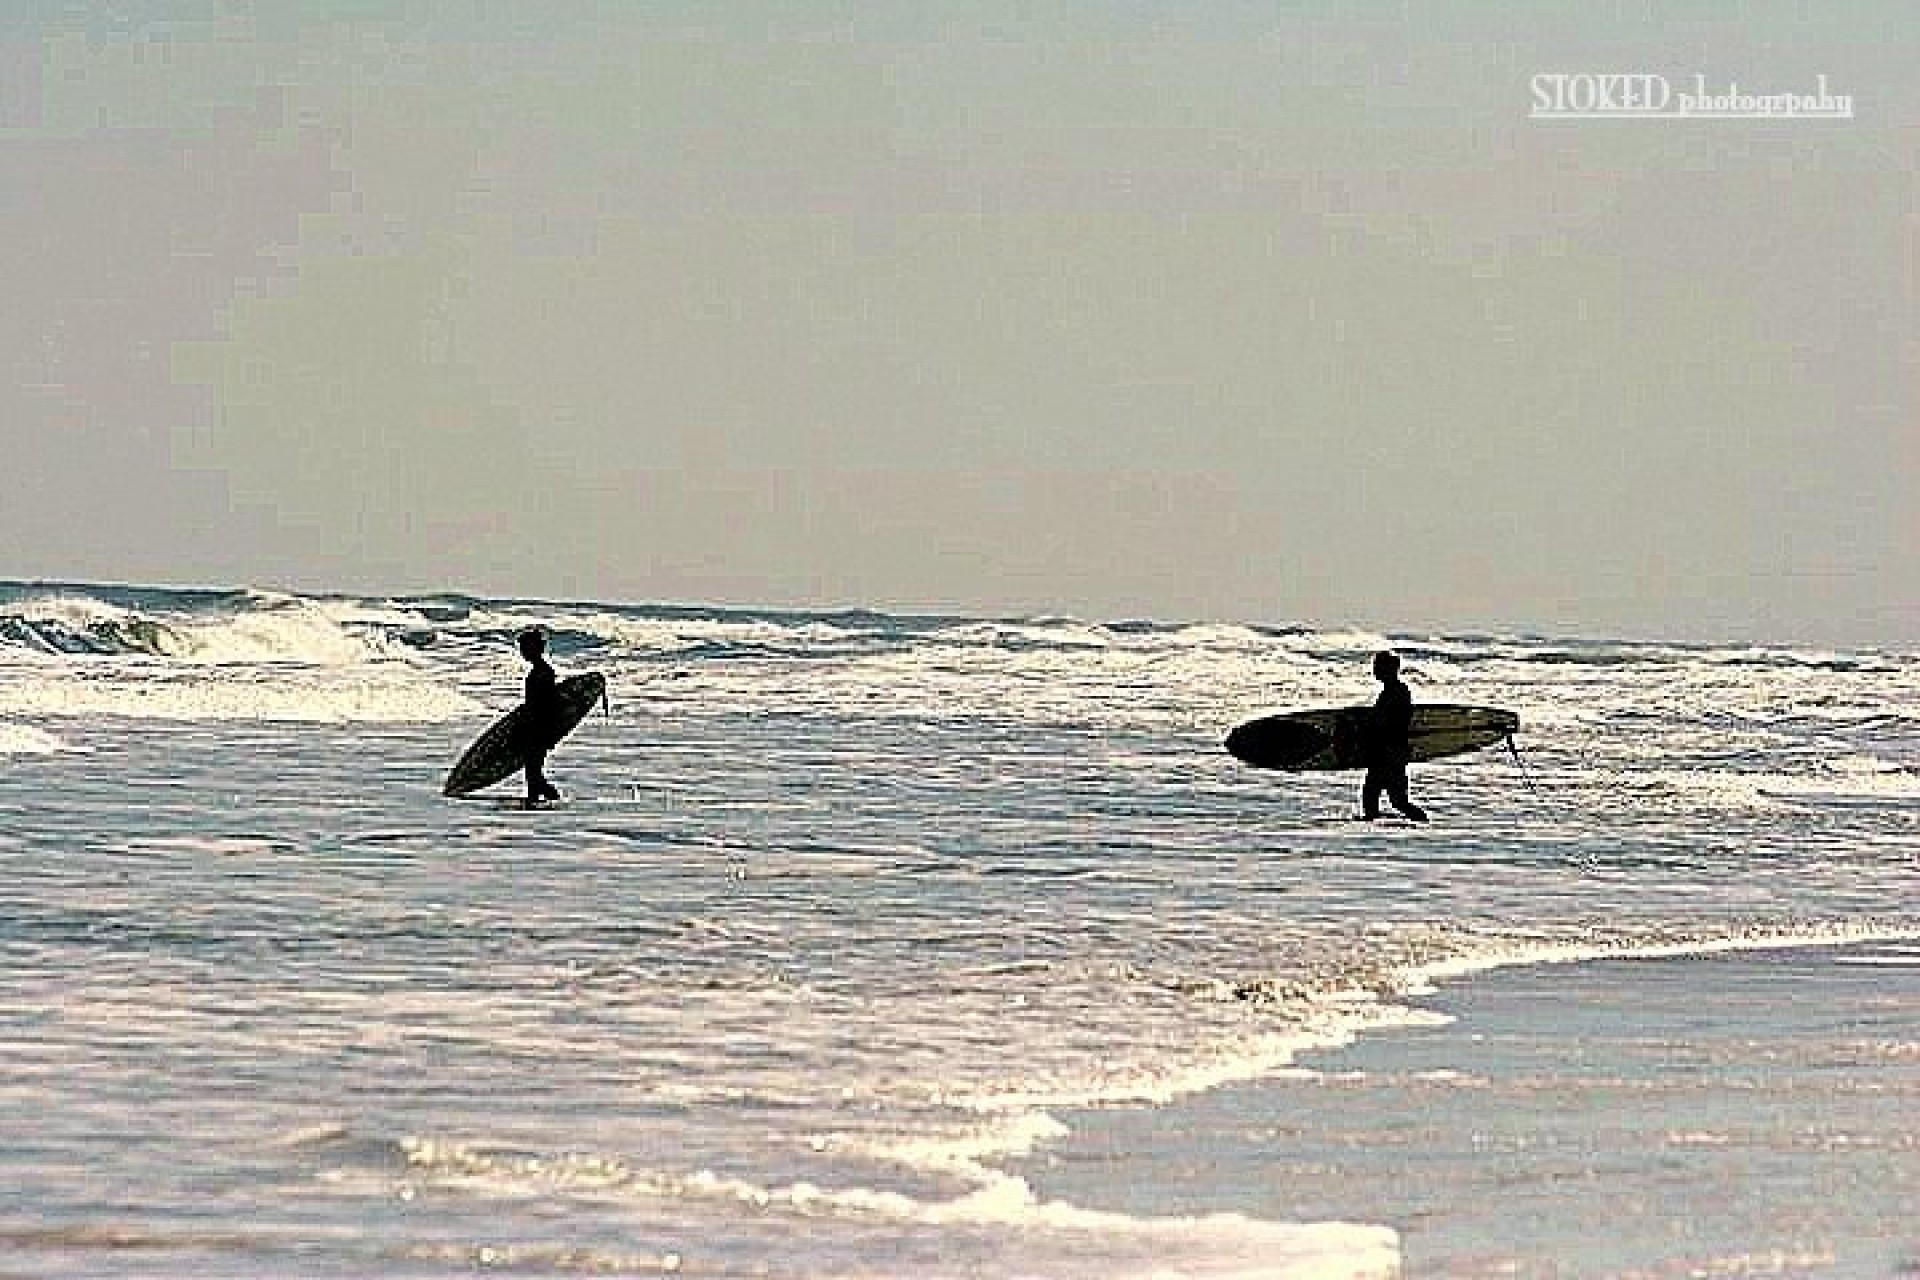 Stoked photography's photo of Ponce Inlet (New Smyrna)